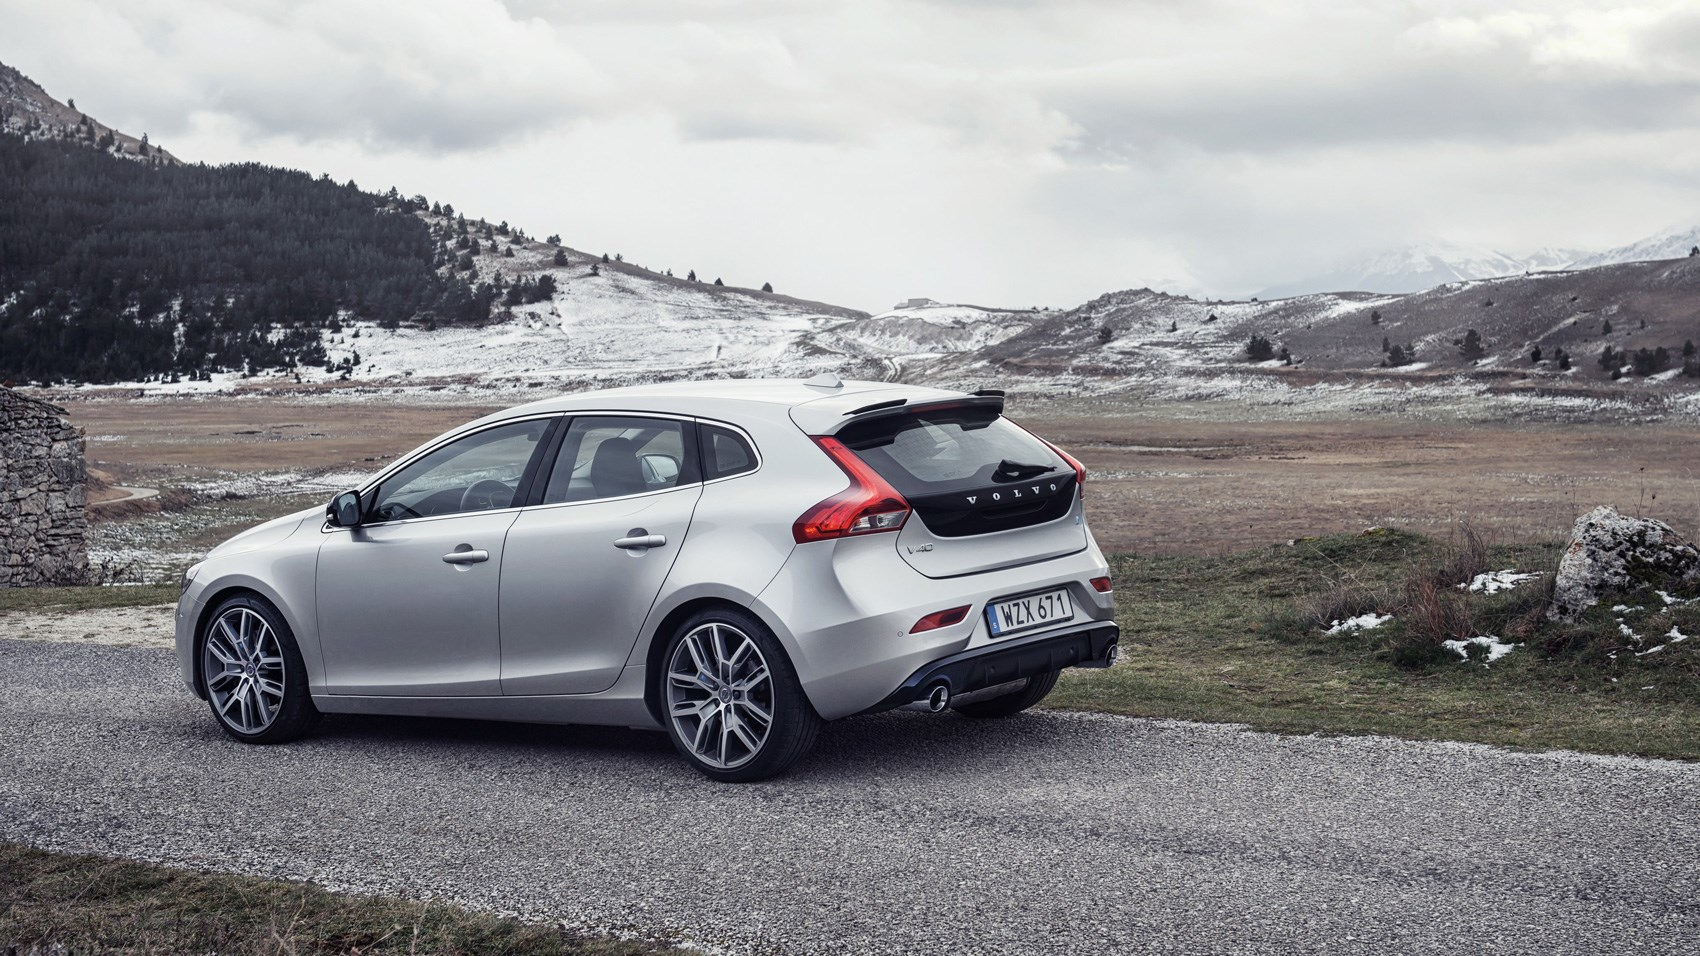 volvo v40 t5 r design pro polestar 2017 review car magazine. Black Bedroom Furniture Sets. Home Design Ideas